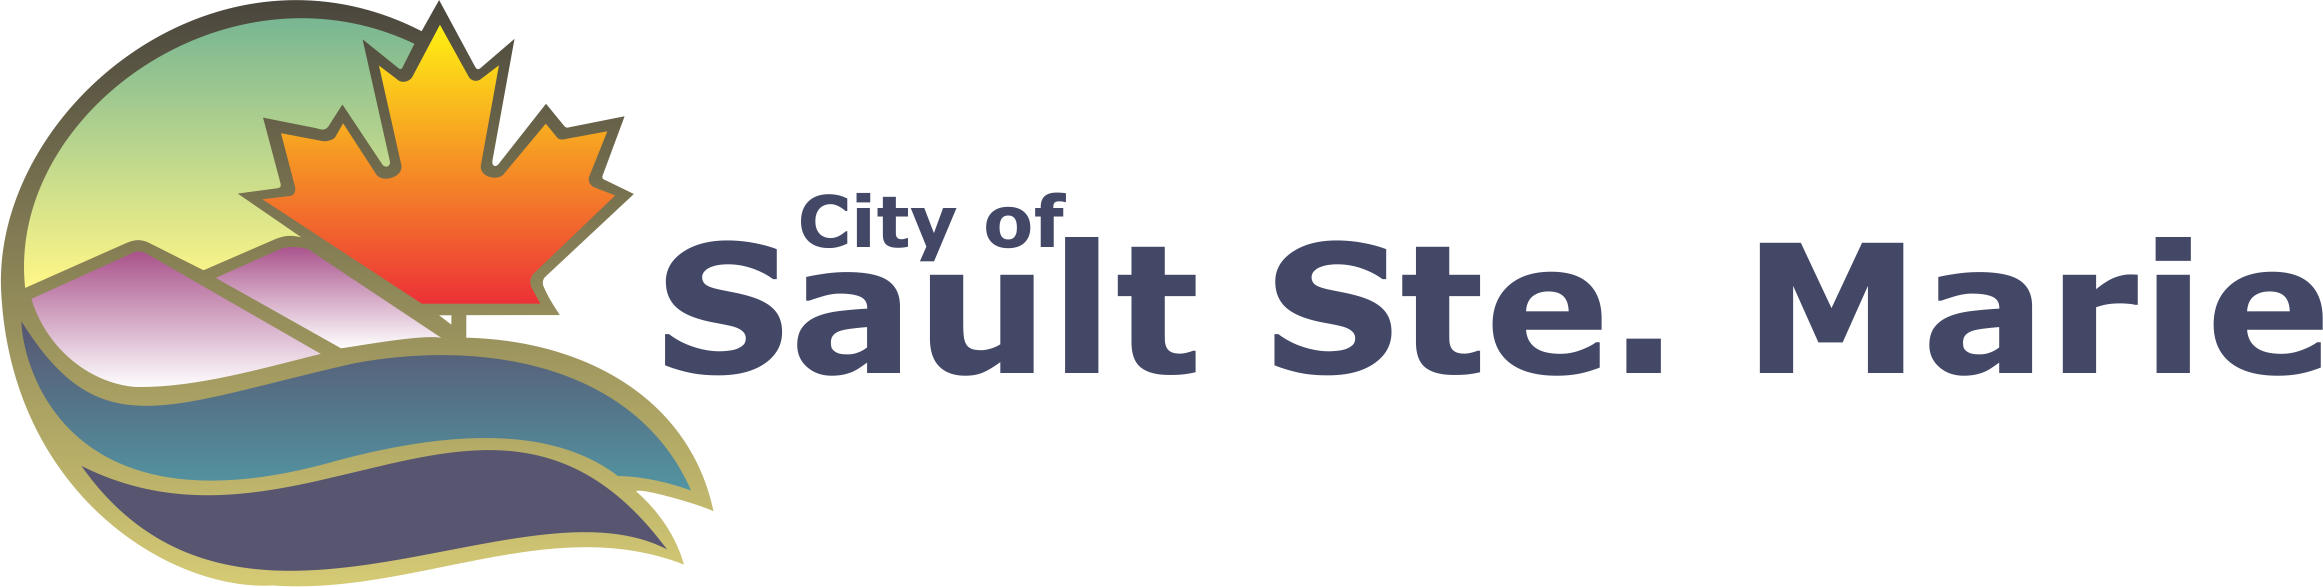 City of Sault Ste. Marie Logo